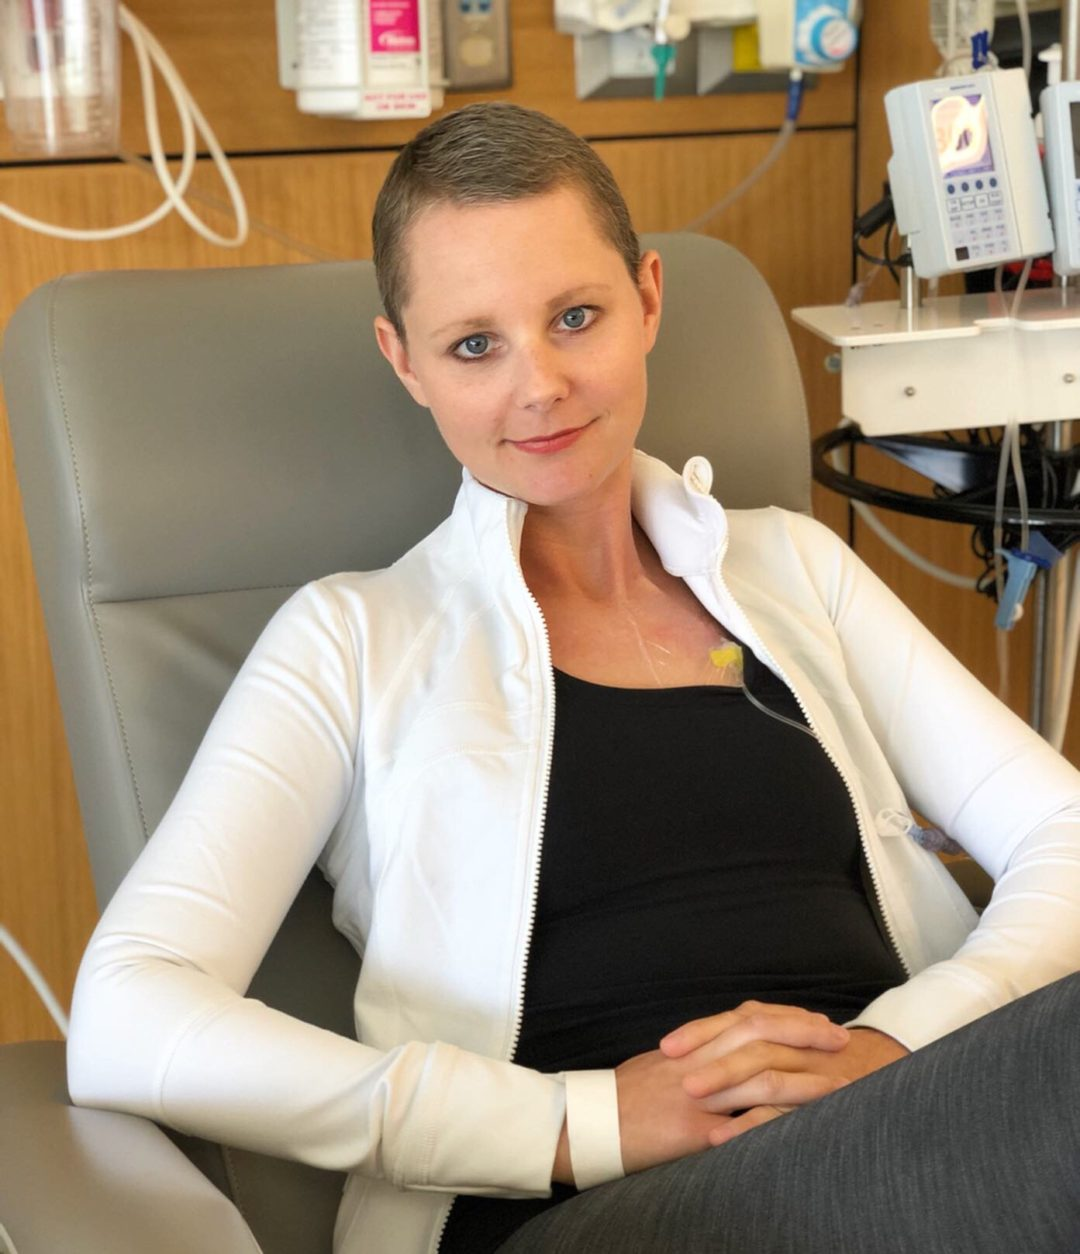 breast cancer, lindsy matthews, chemo, mastectomy, radiation